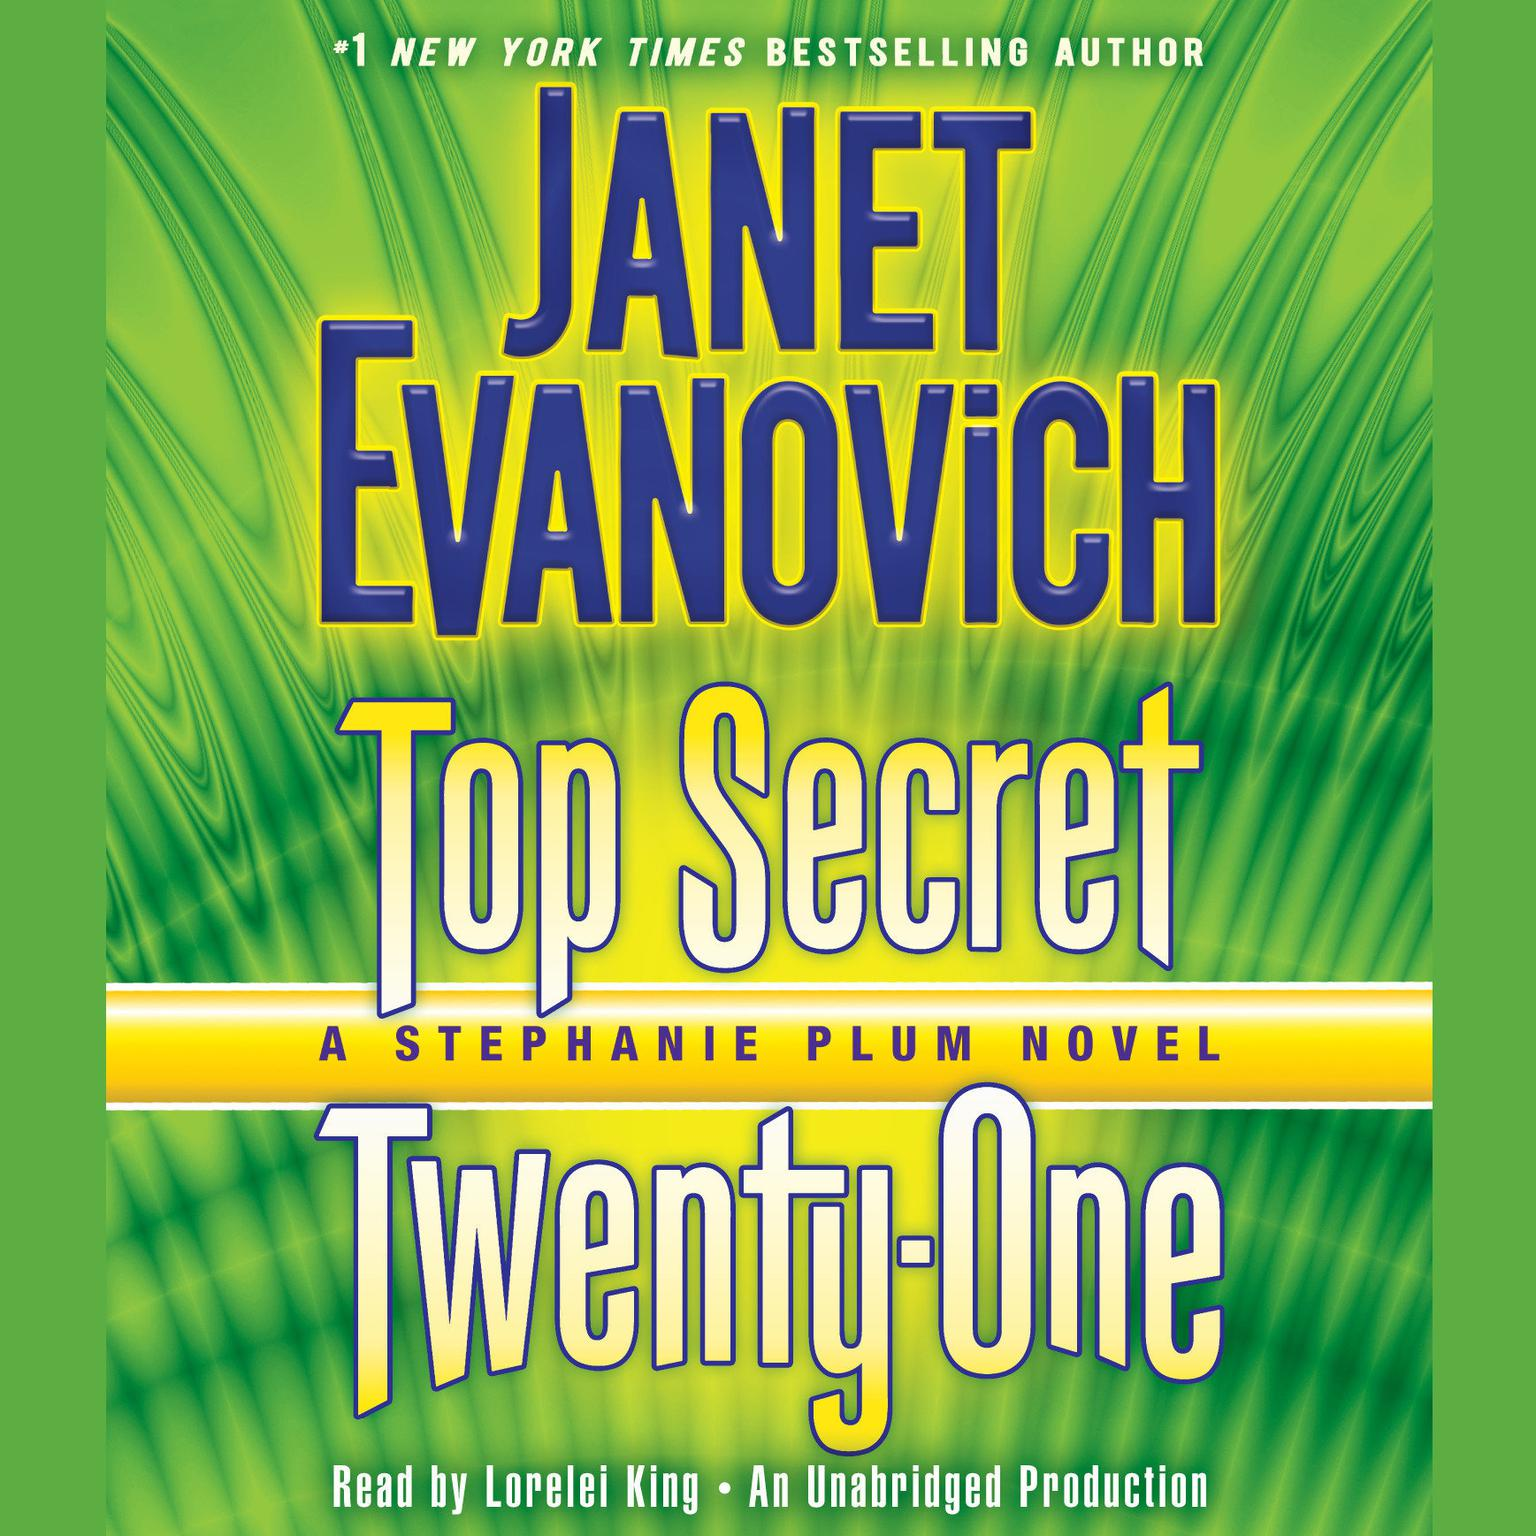 Printable Top Secret Twenty-One: A Stephanie Plum Novel Audiobook Cover Art